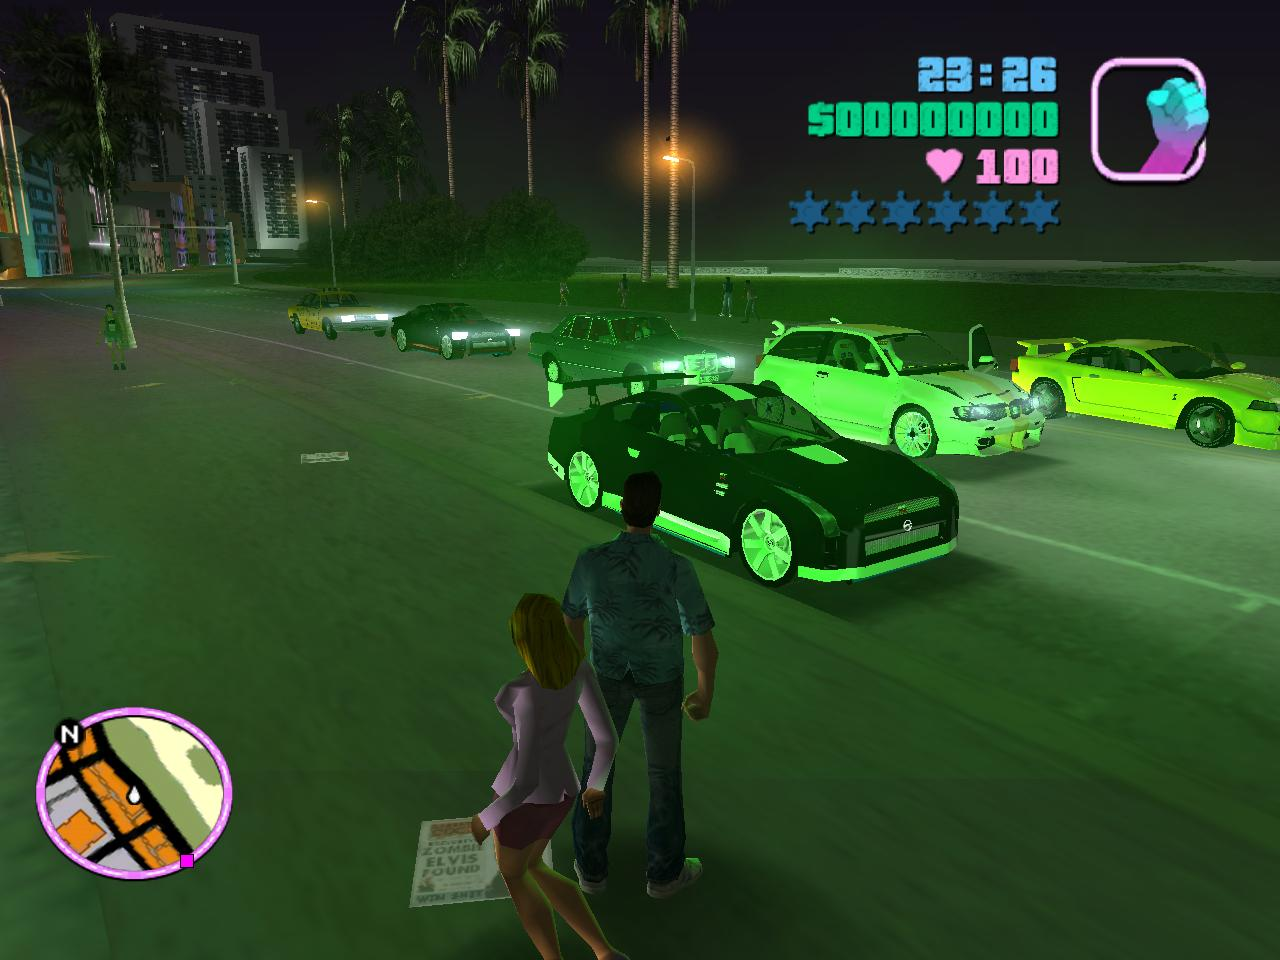 TÉLÉCHARGER GTA VICE CITY STARMAN MOD PC STARTIMES